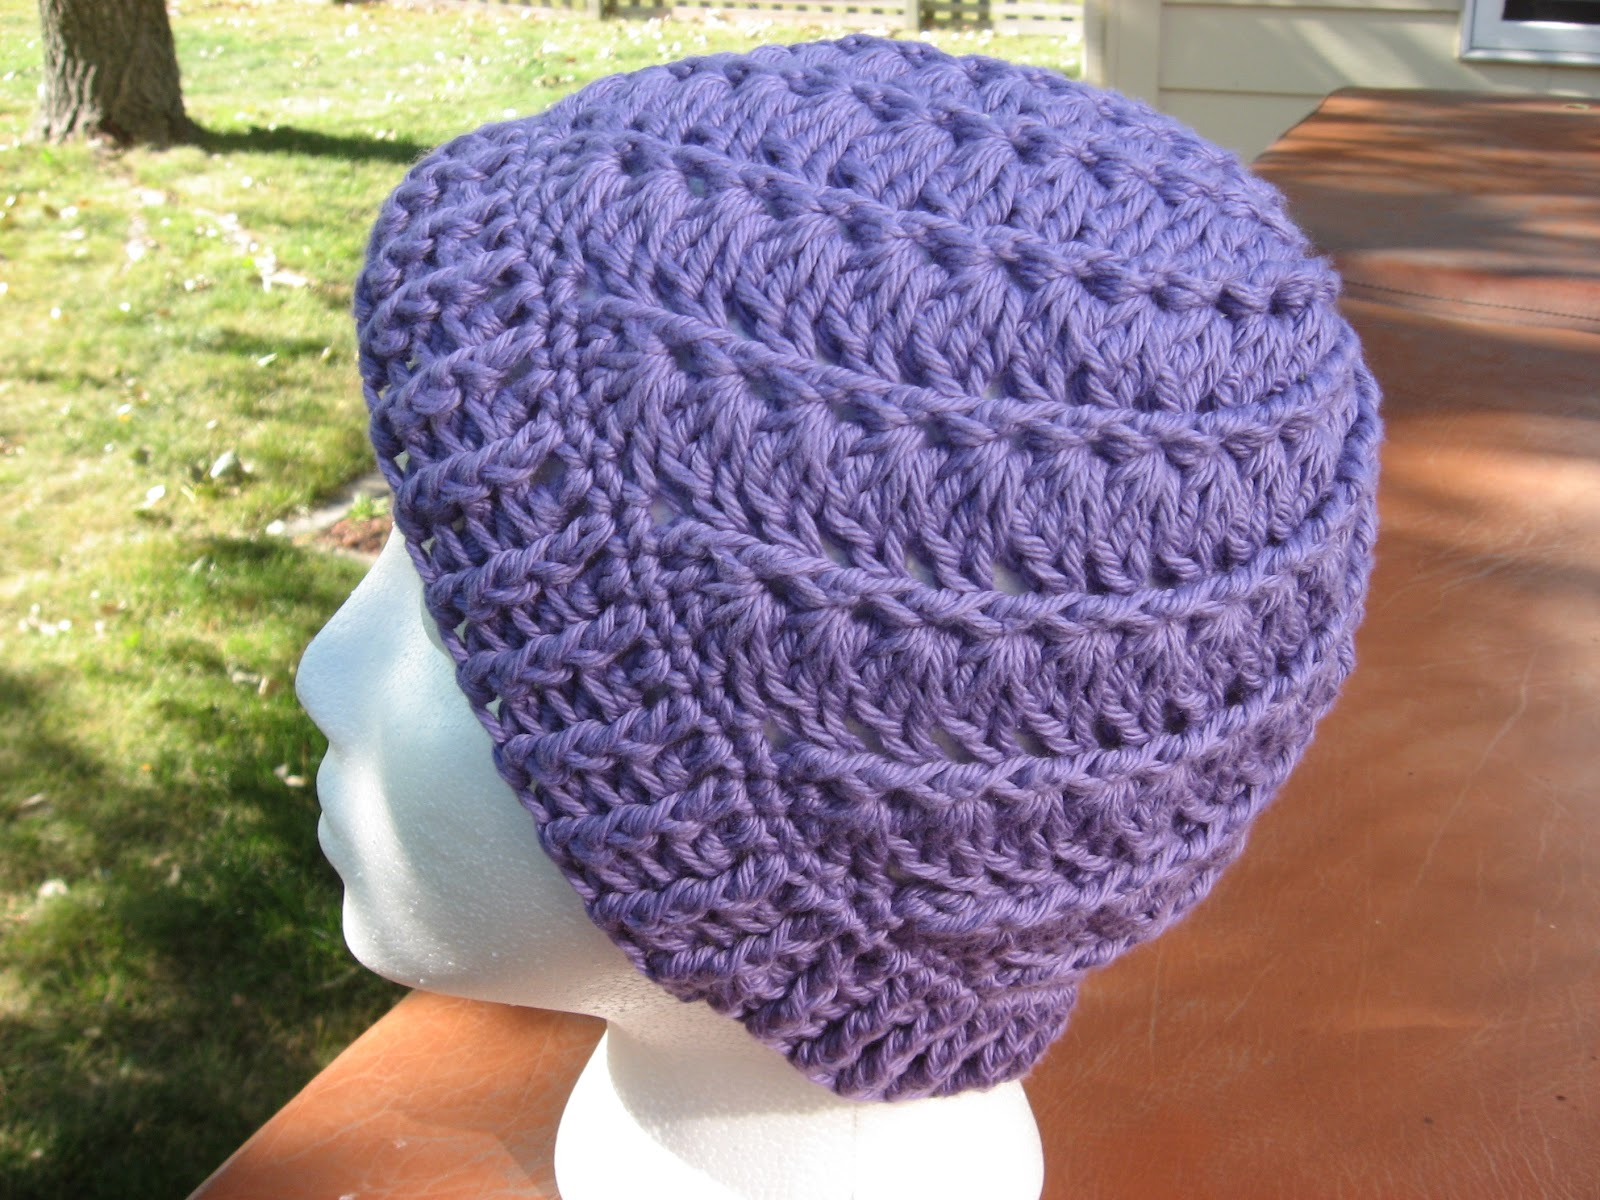 Crocheting Hats For Cancer Patients : More chemo hats done for the local cancer center!